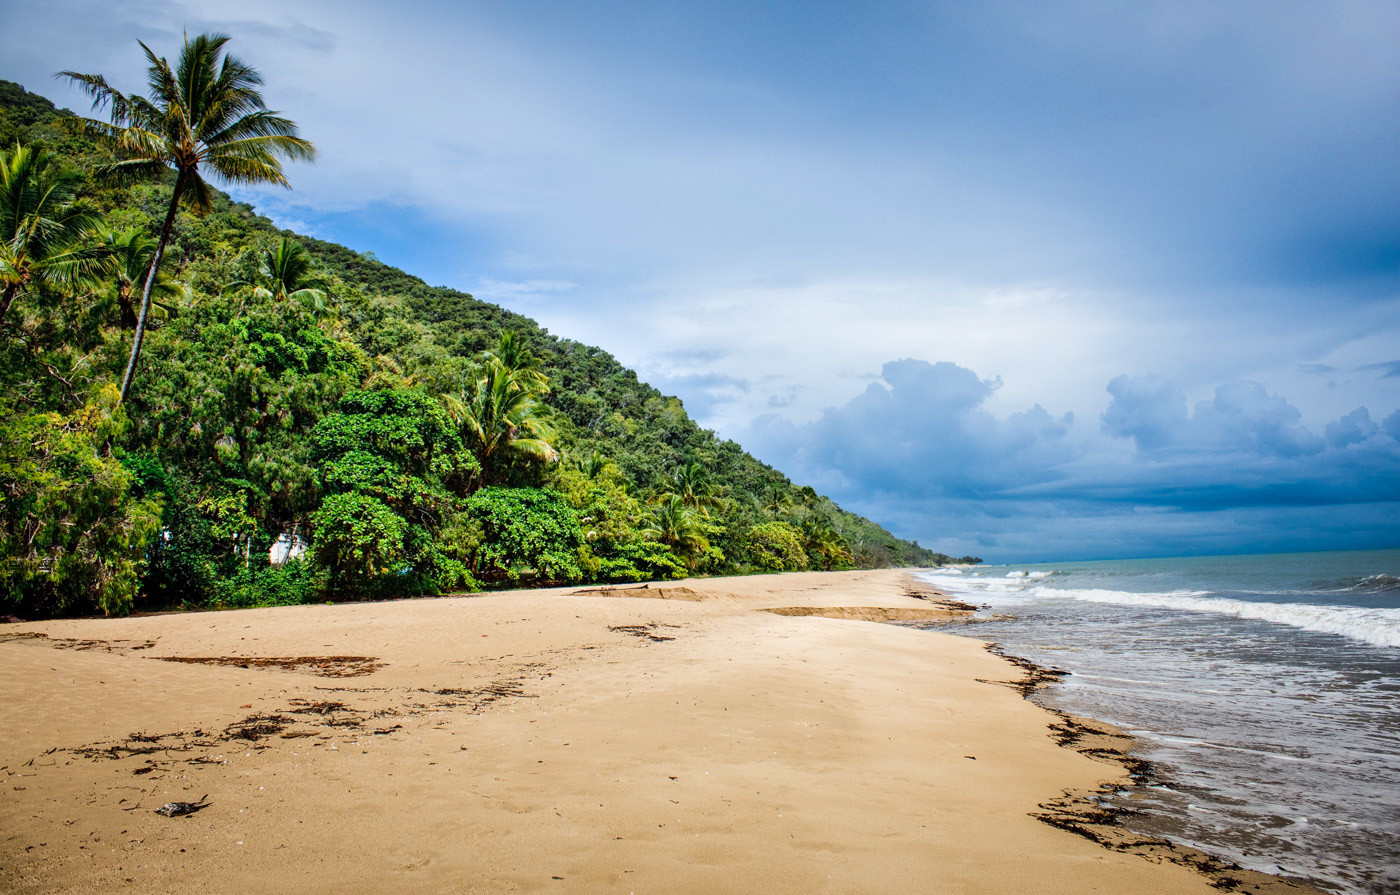 Cape Tribulation Beach, where the rainforest meets the beach